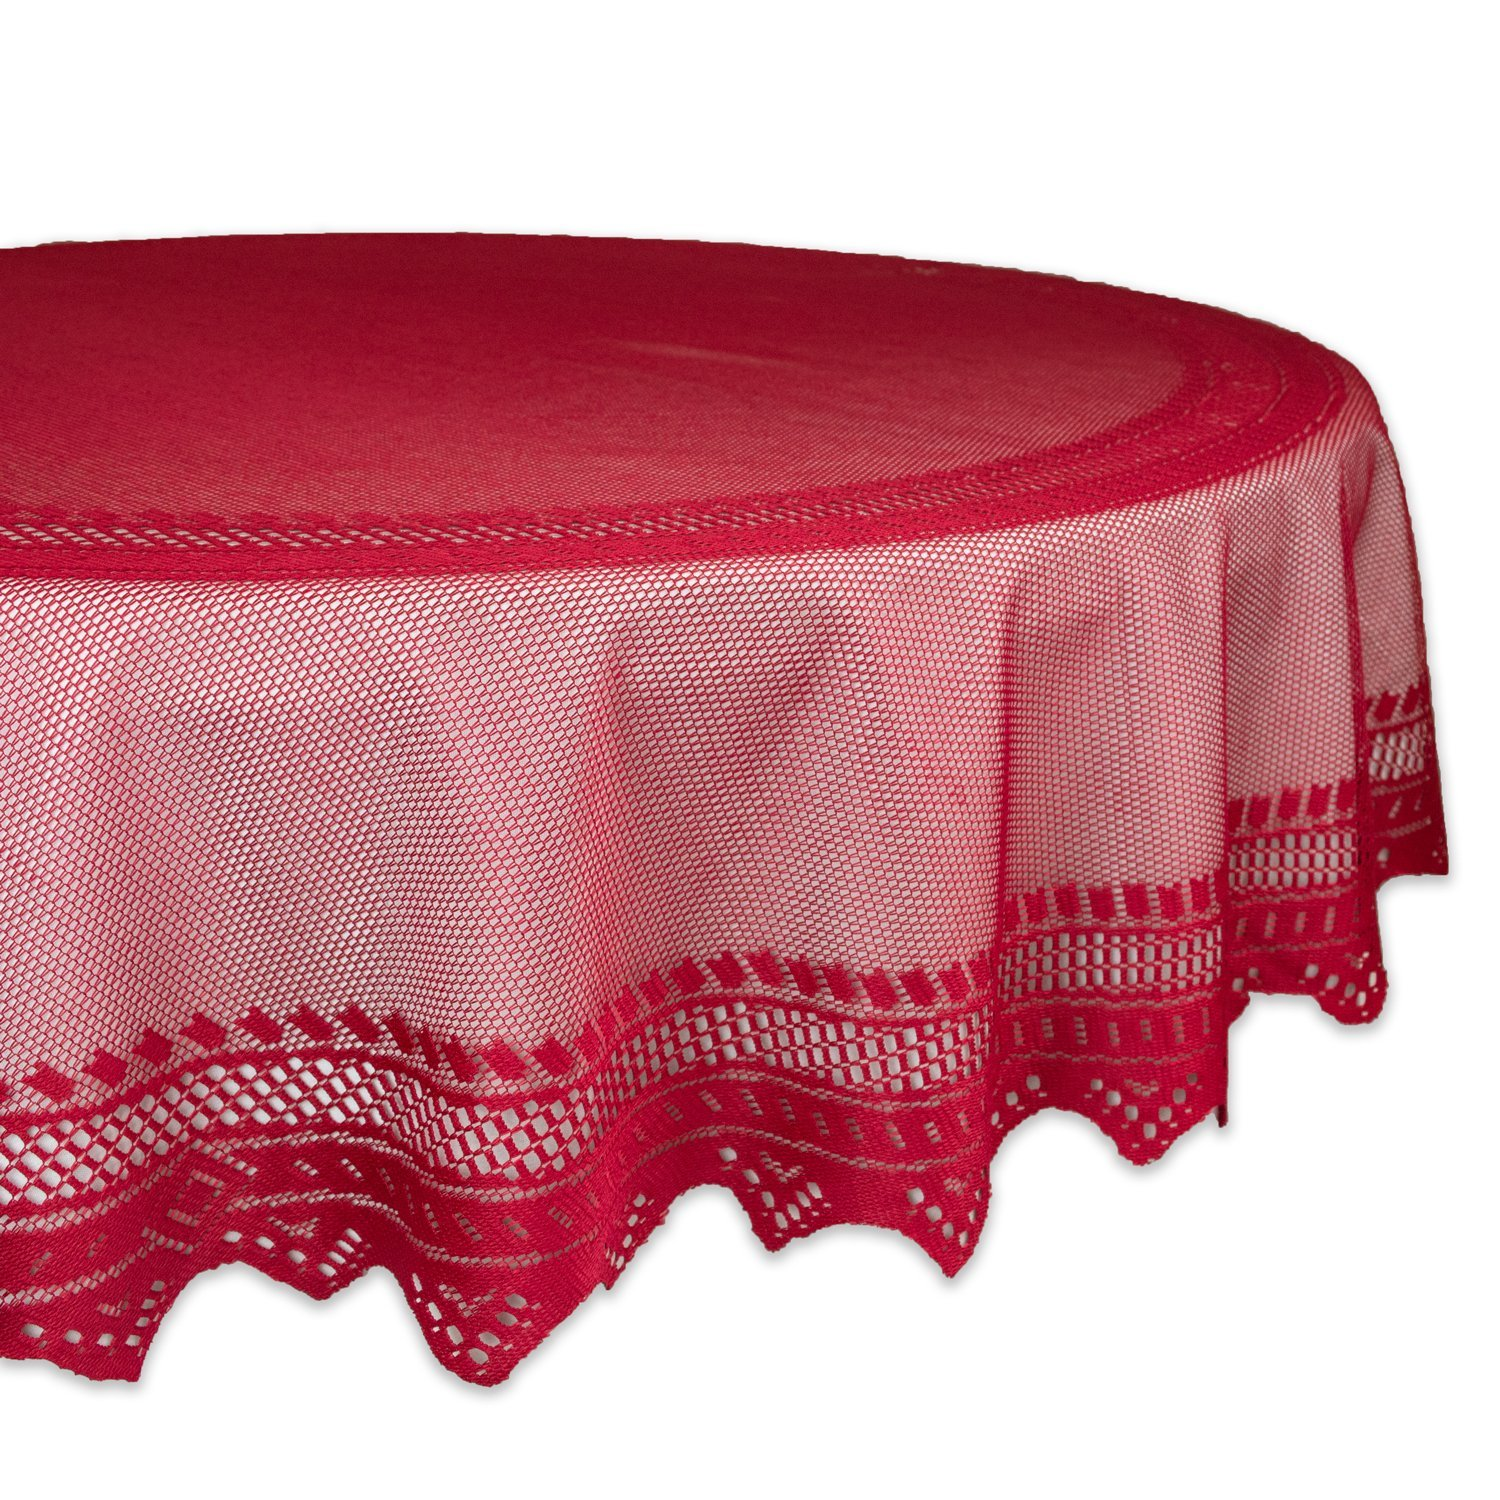 "DII 100% Polyester, Machine Washable, Crochet/Lace Tablecloth, 70"" Round Seats 4 to 6 People, Red"